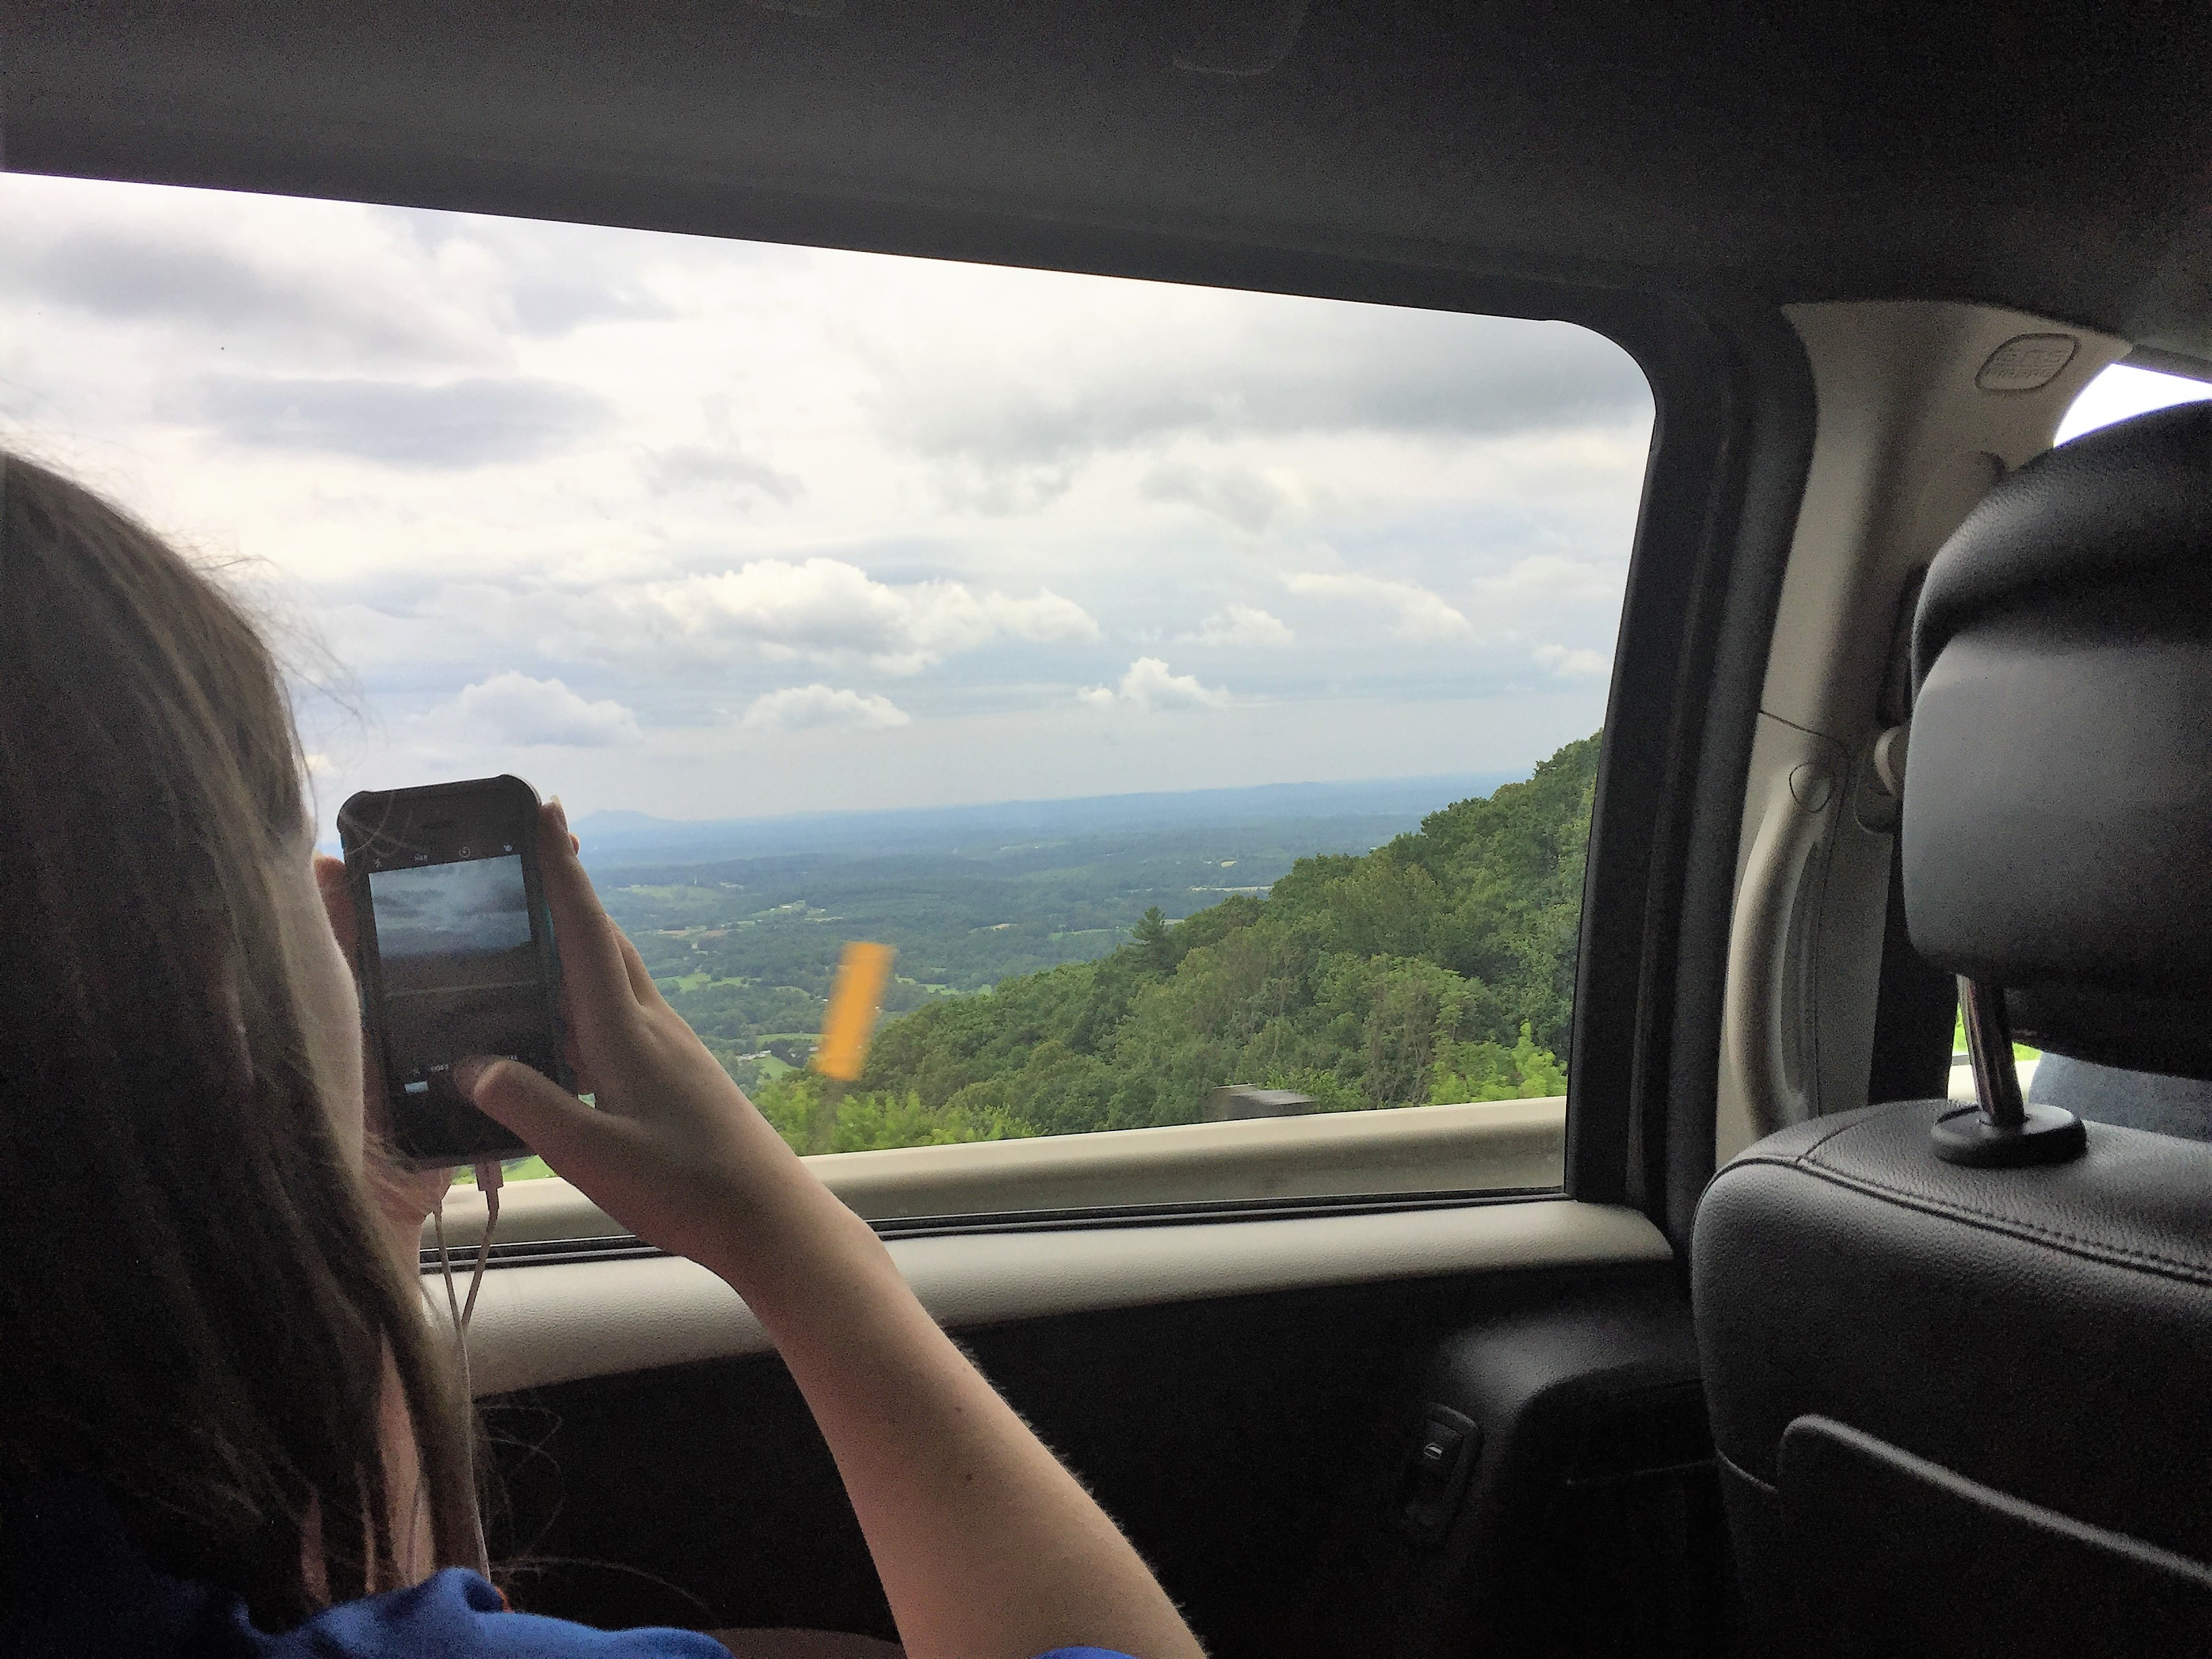 Road trips with teens and tweens are fun photo ops.